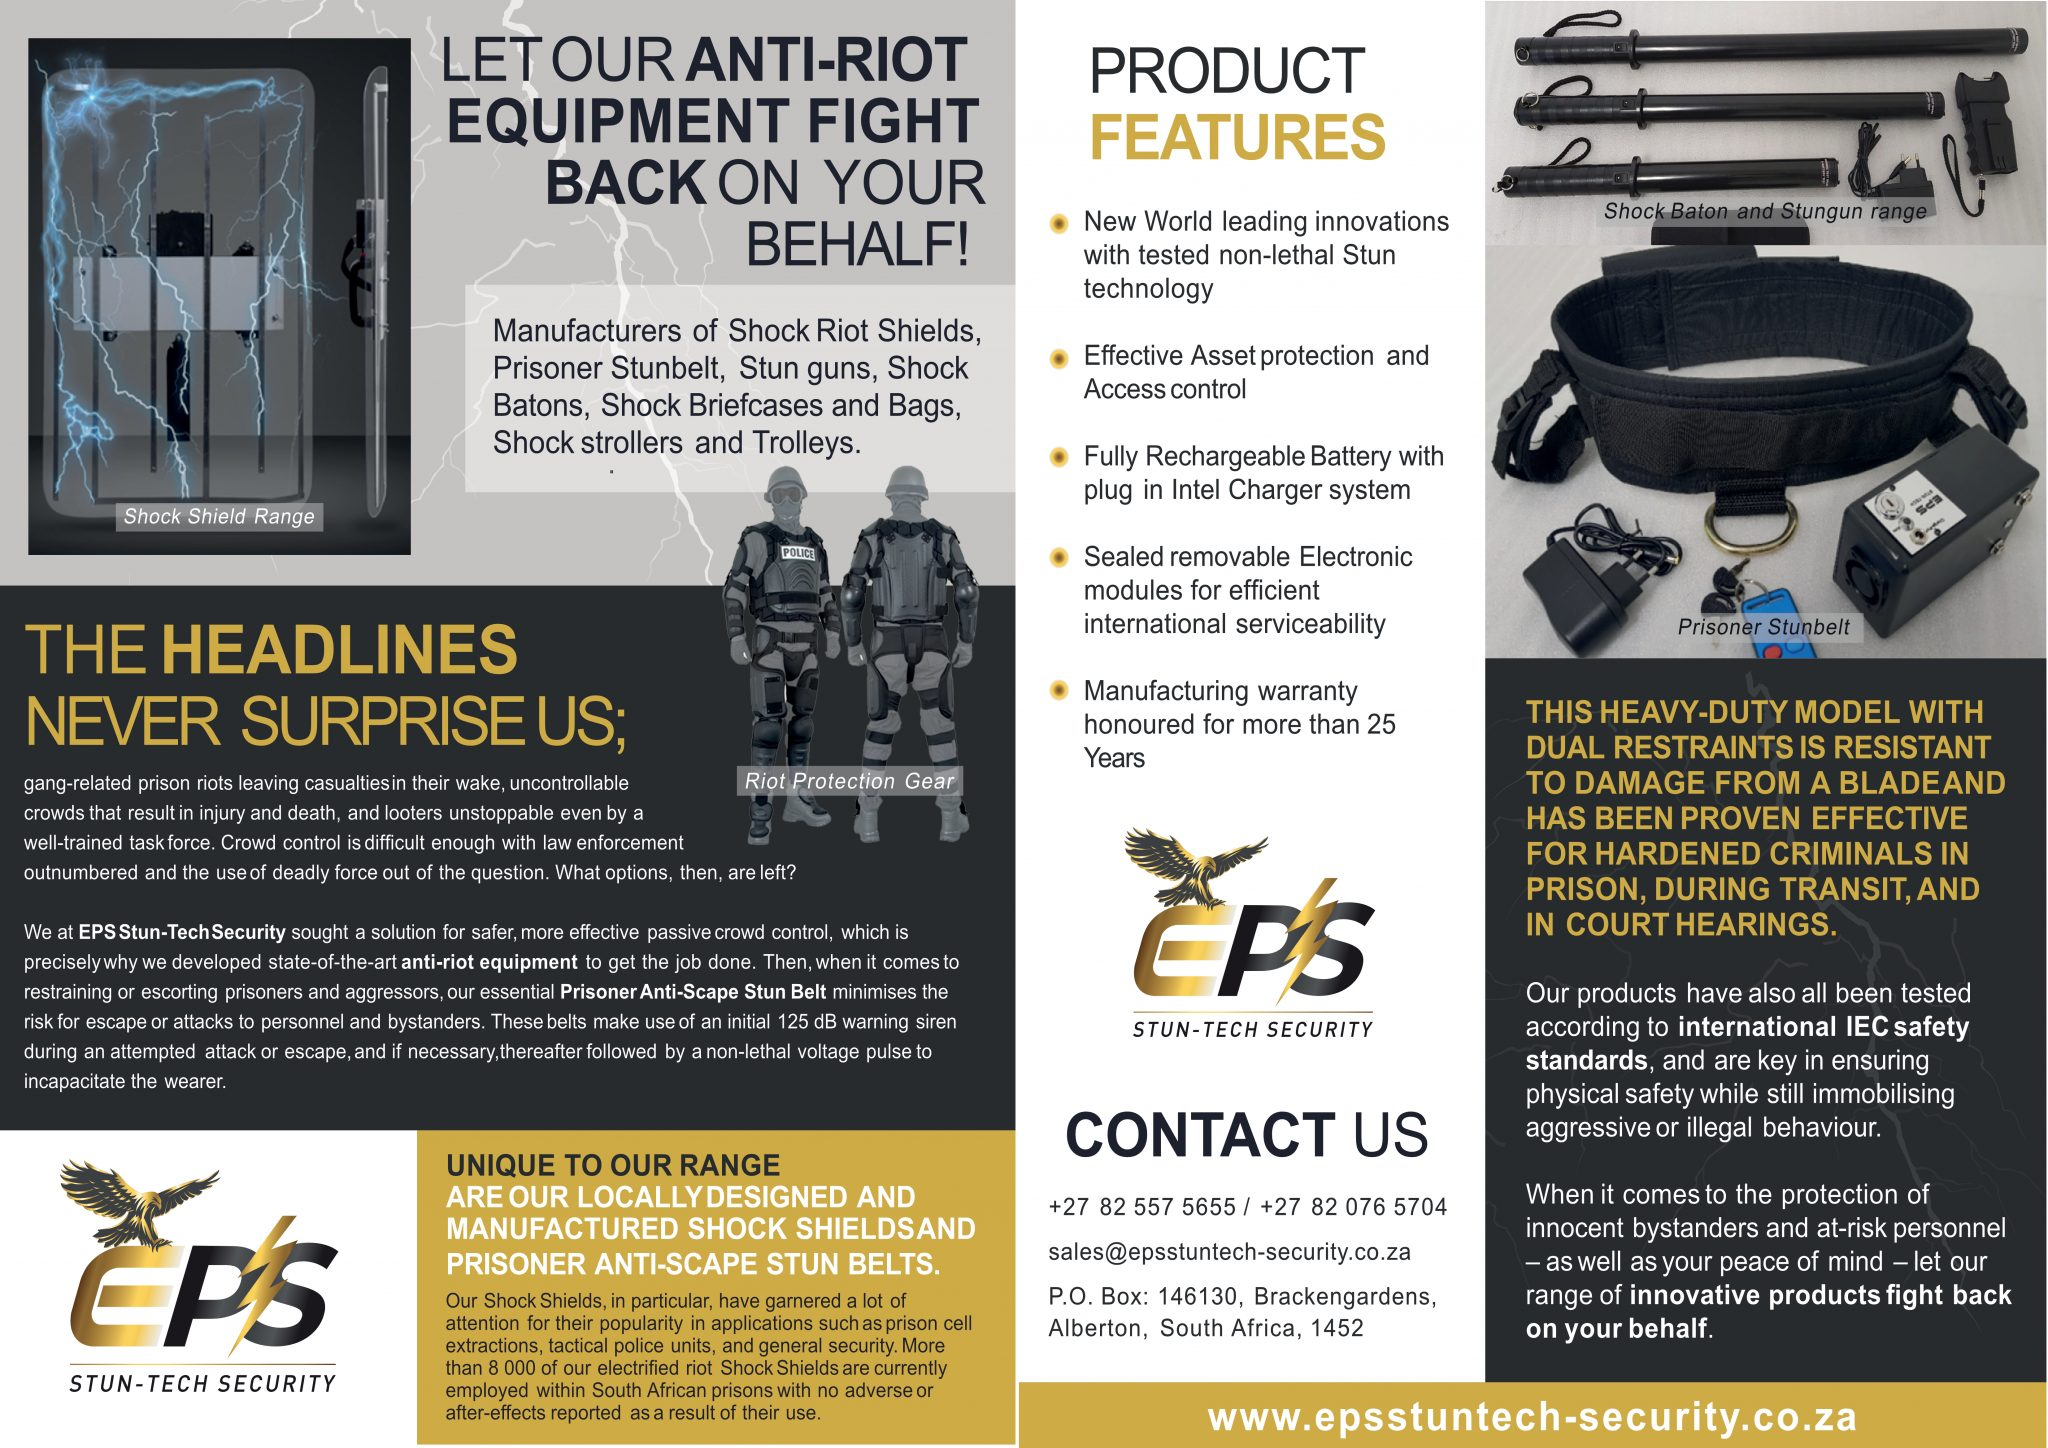 EPS Stun-Tech Security - Featured in Safety & Security Review Africa